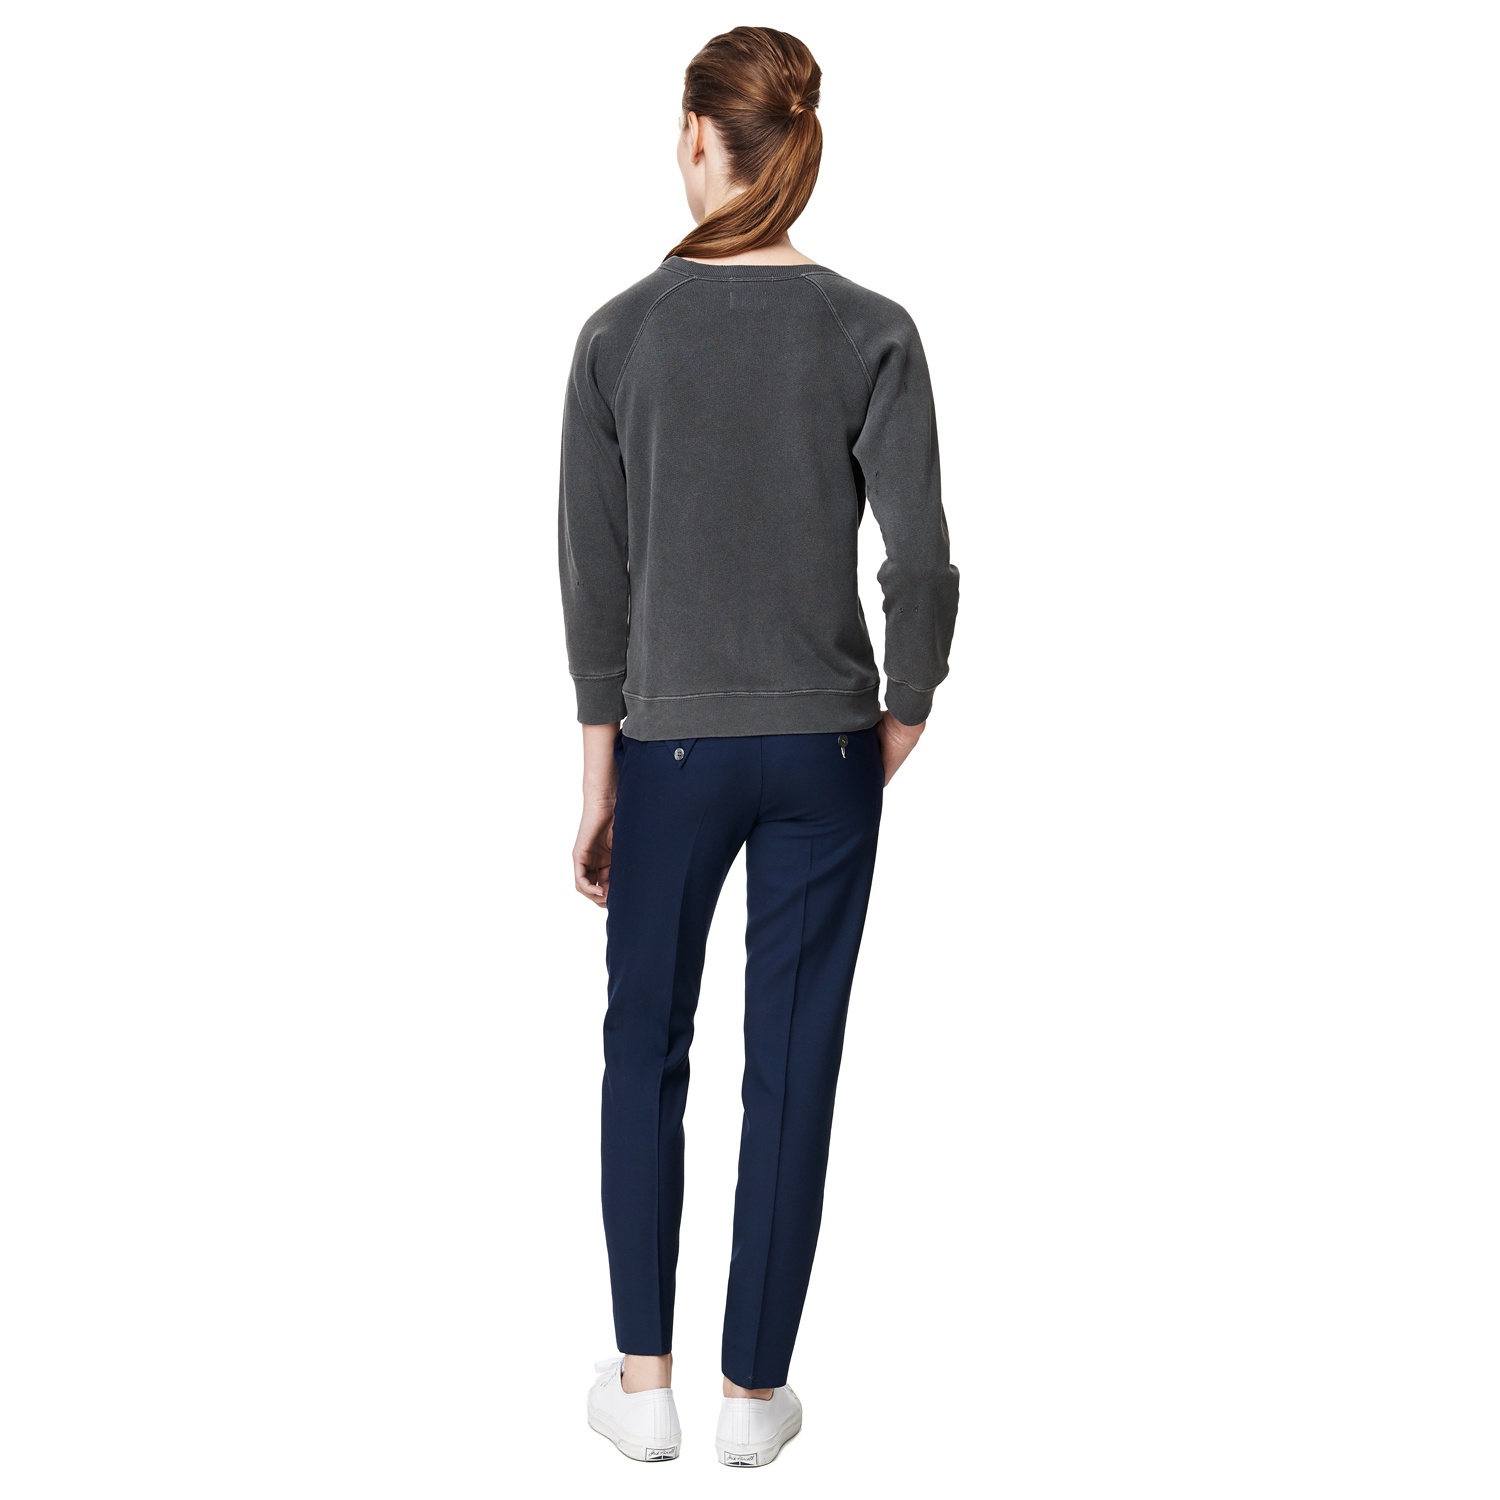 GANT RUGGER Women's The Godmother Sweatshirt Graphite | Official Site